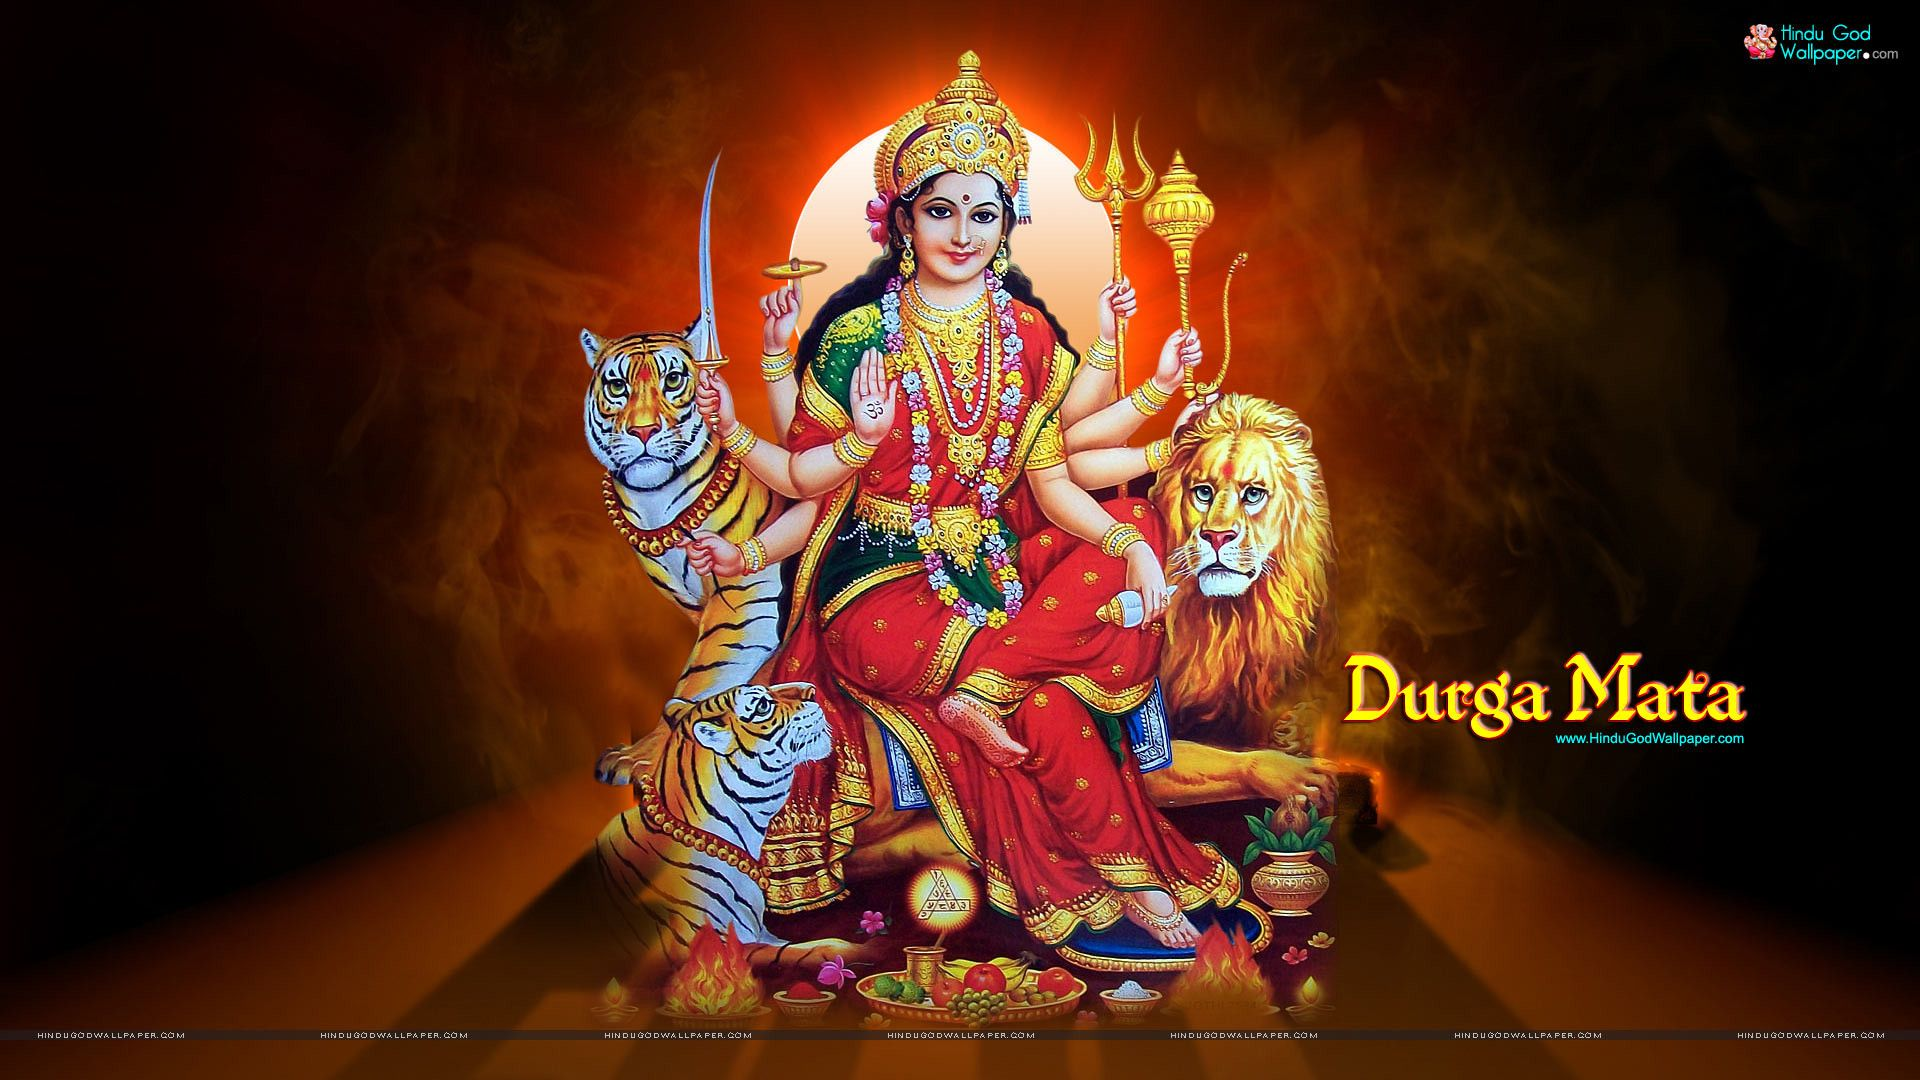 Maa Durga Hd Wallpaper 1080p For Pc 964651 Maa Durga Hd Wallpaper Maa Durga Hd Durga